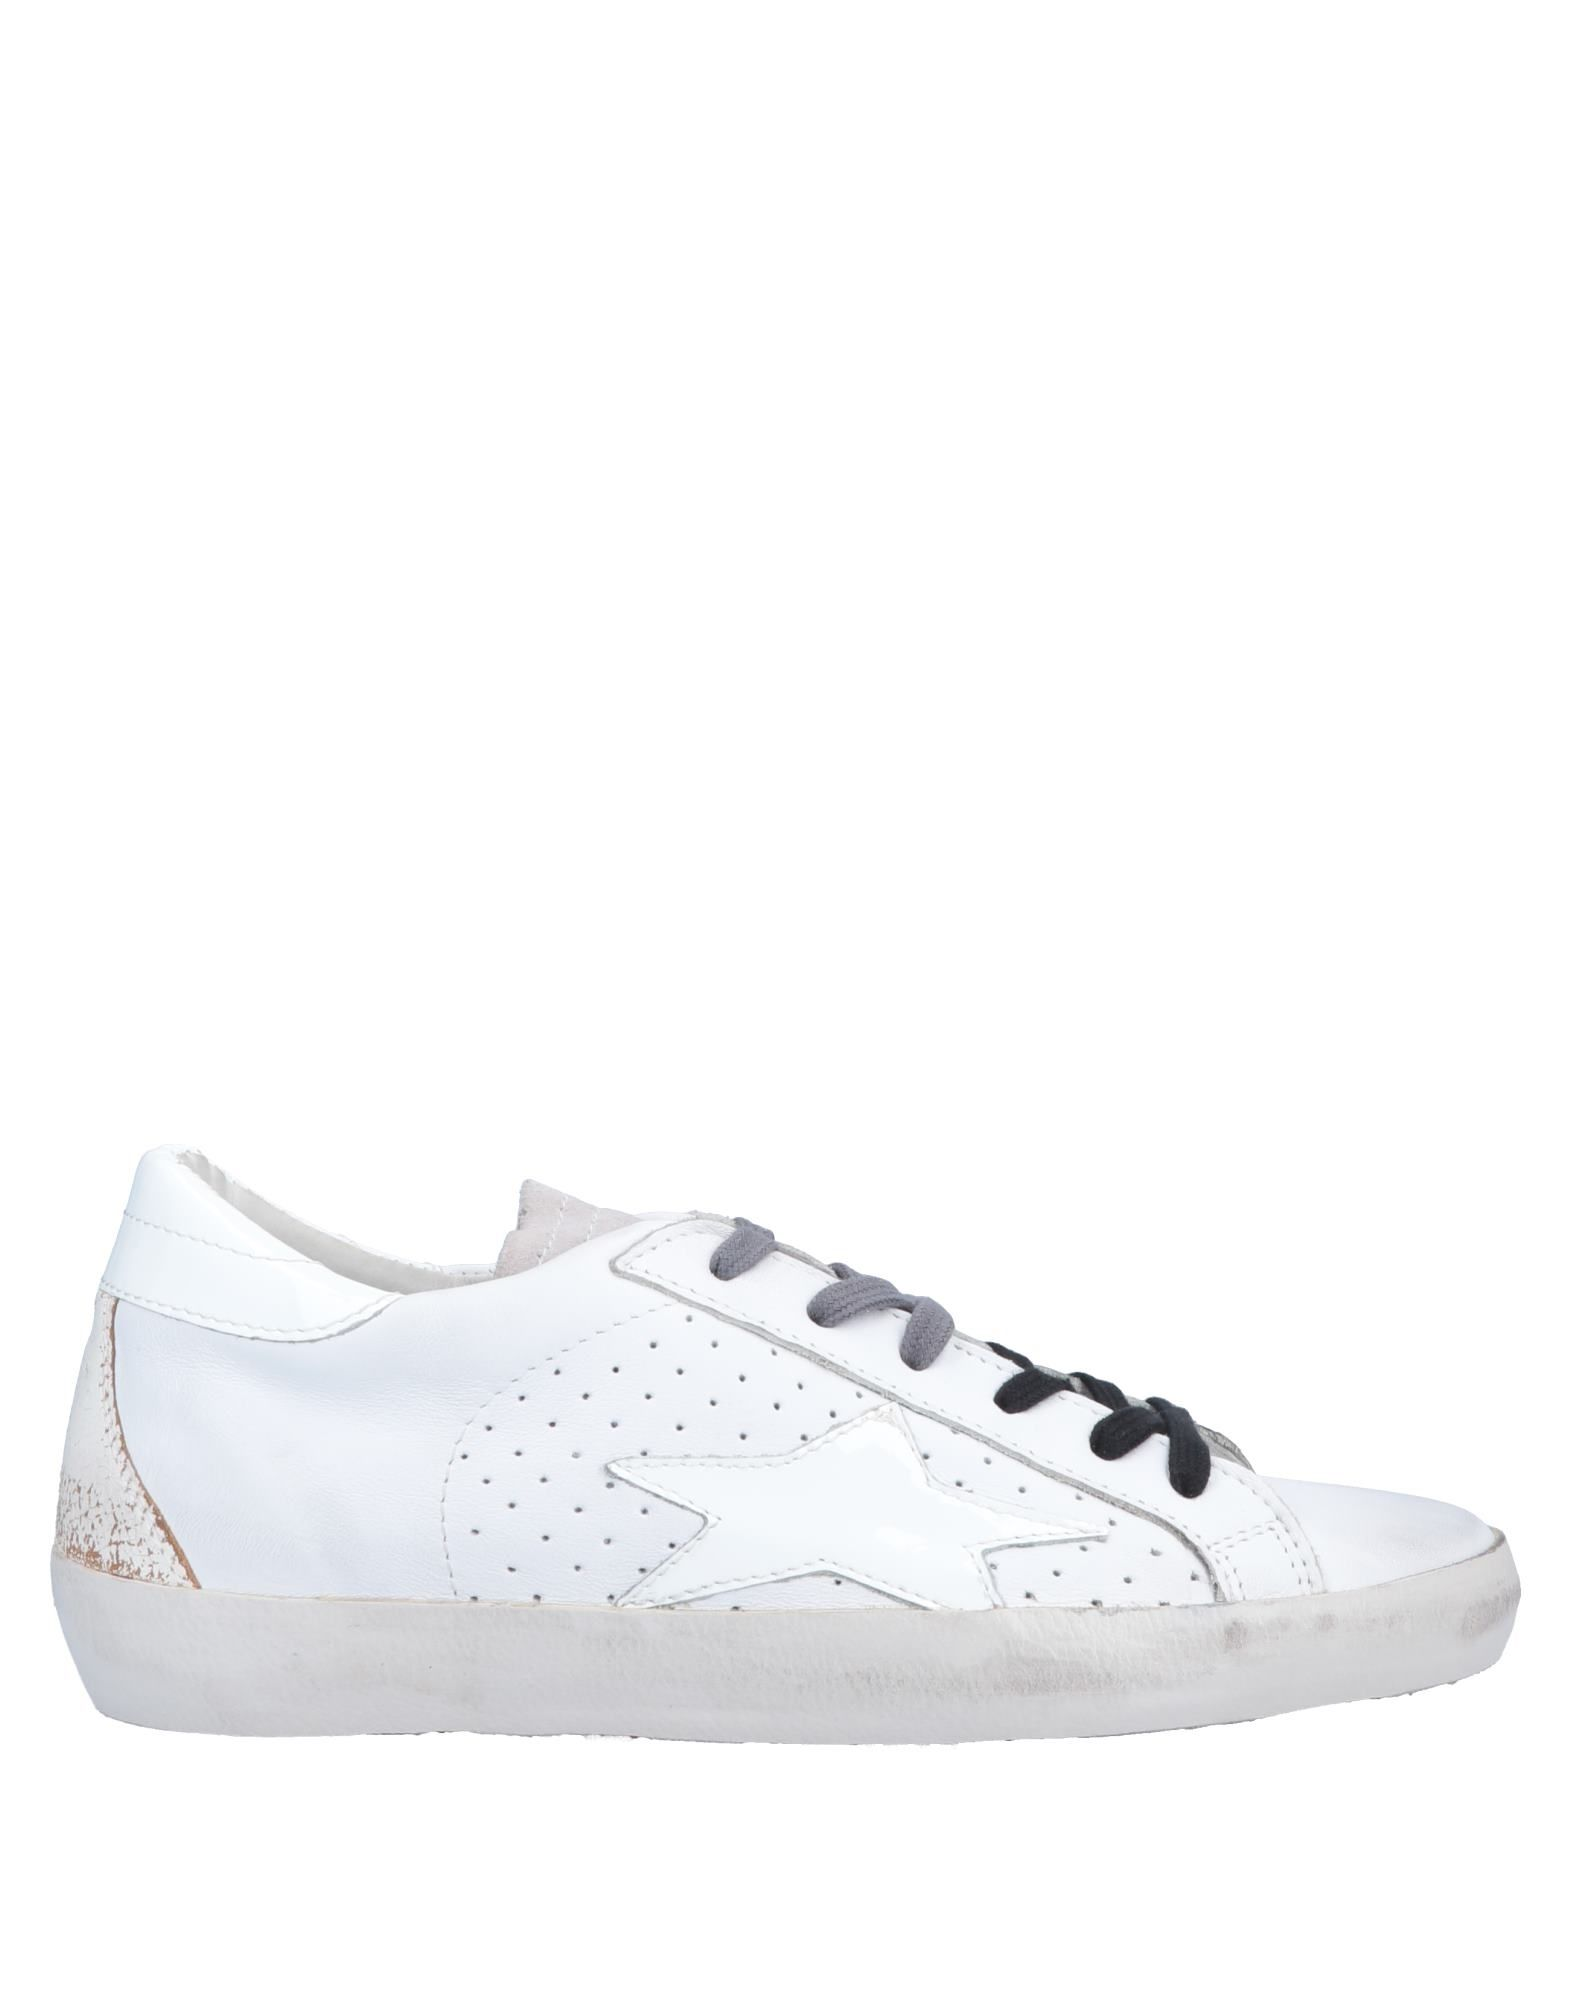 ISHIKAWA | ISHIKAWA Low-Tops & Sneakers 11646418 | Goxip